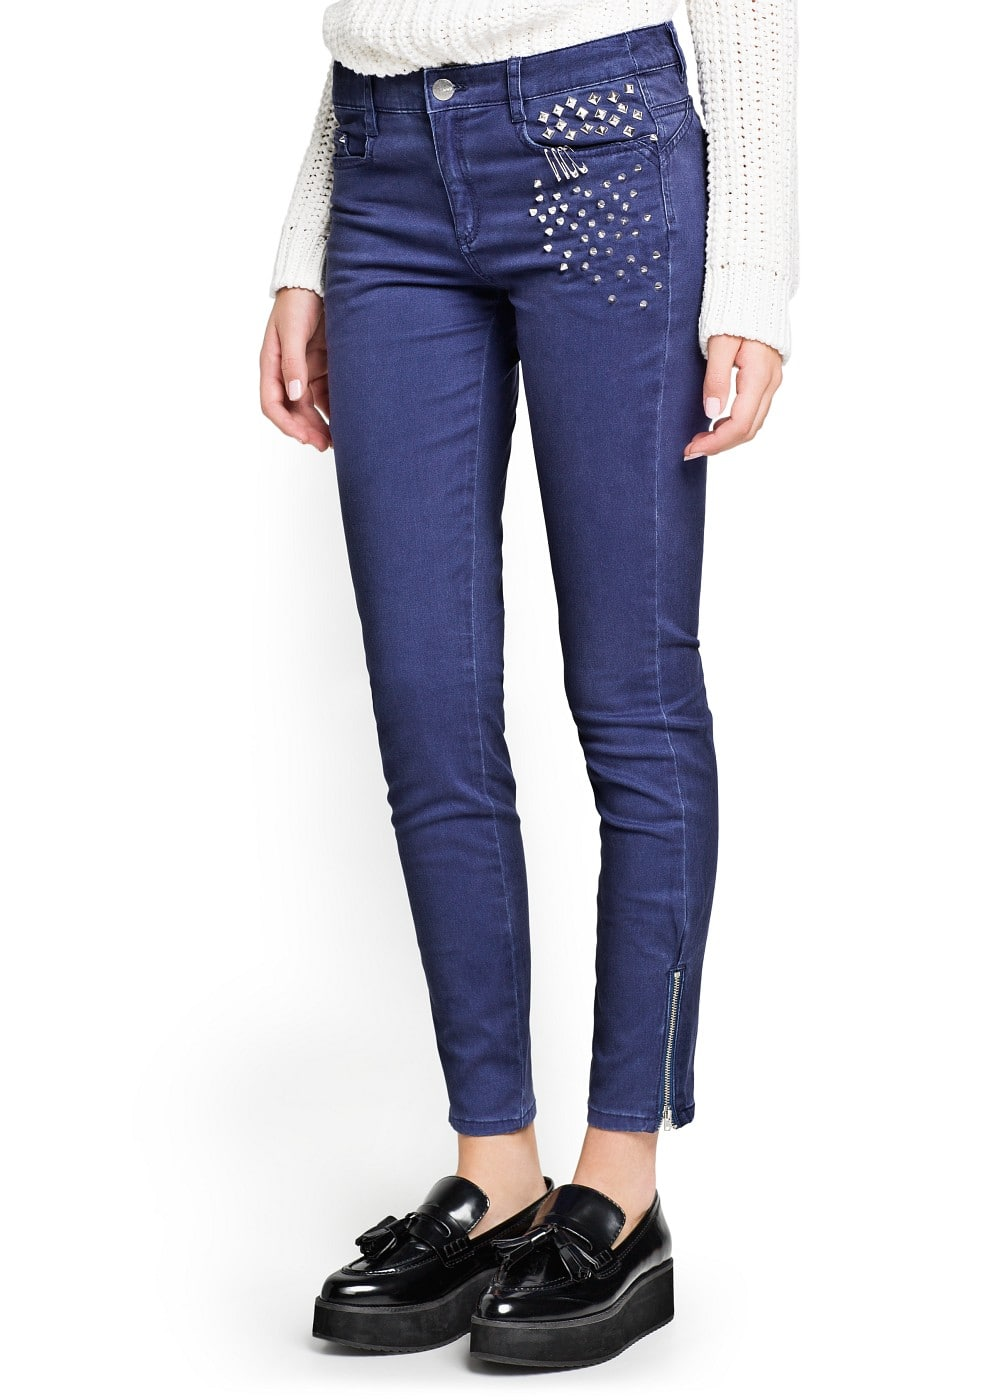 cotton-blend studded trousers